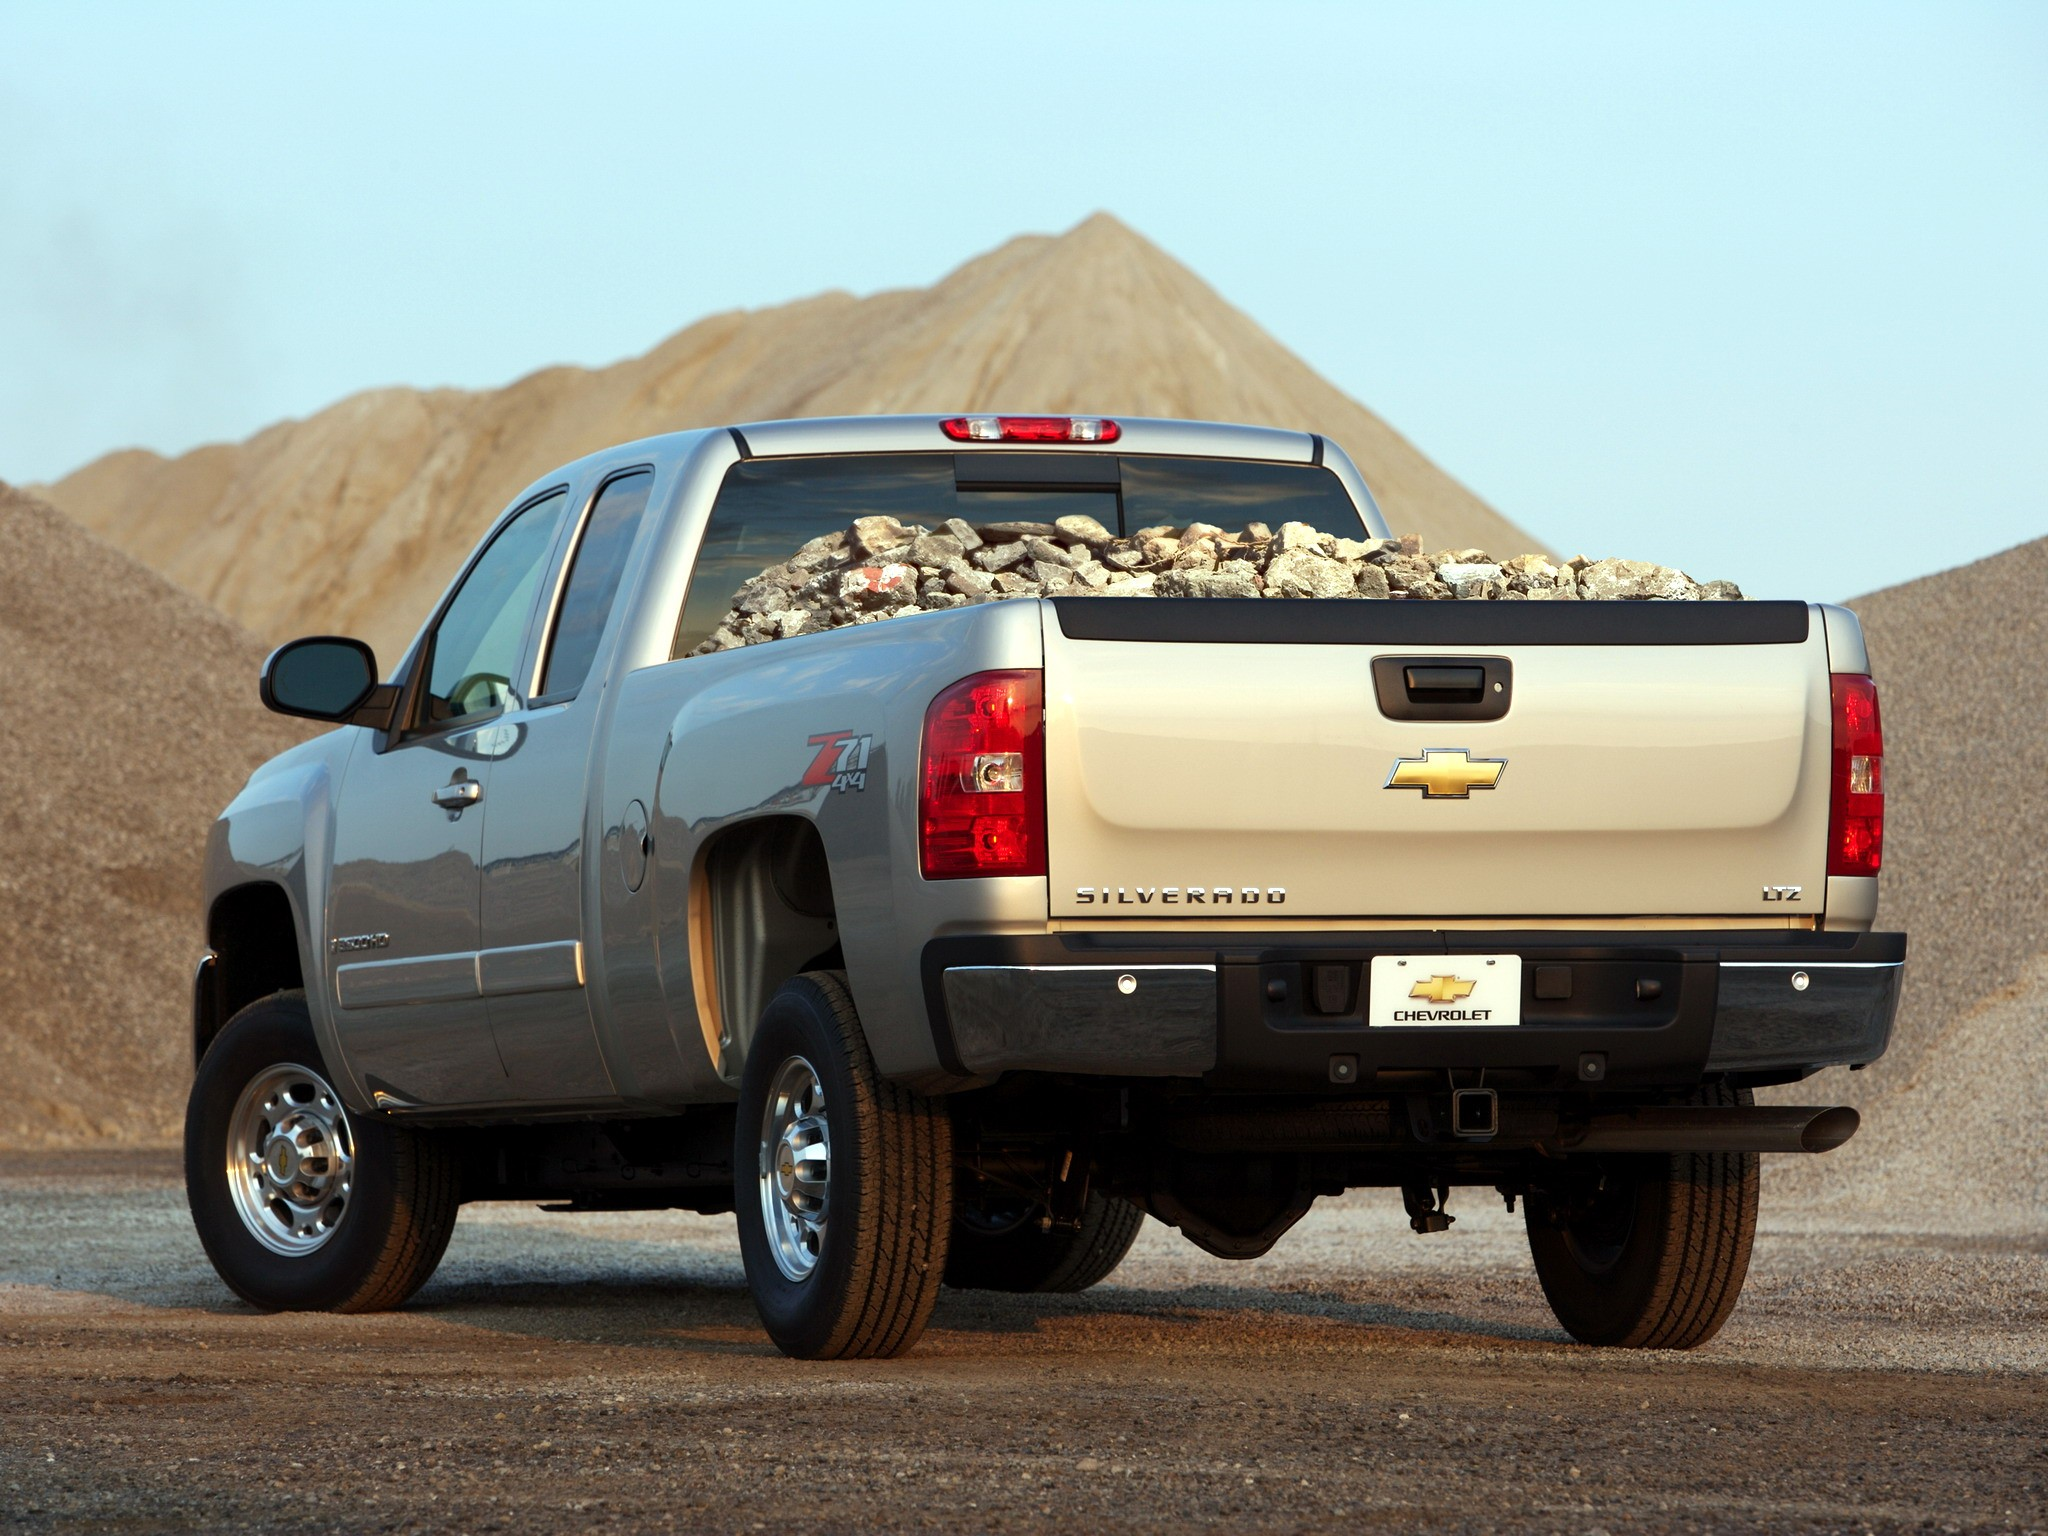 Chevrolet Financing Grand Ledge >> 2013 Chevrolet 2500hd Brochure | Upcomingcarshq.com